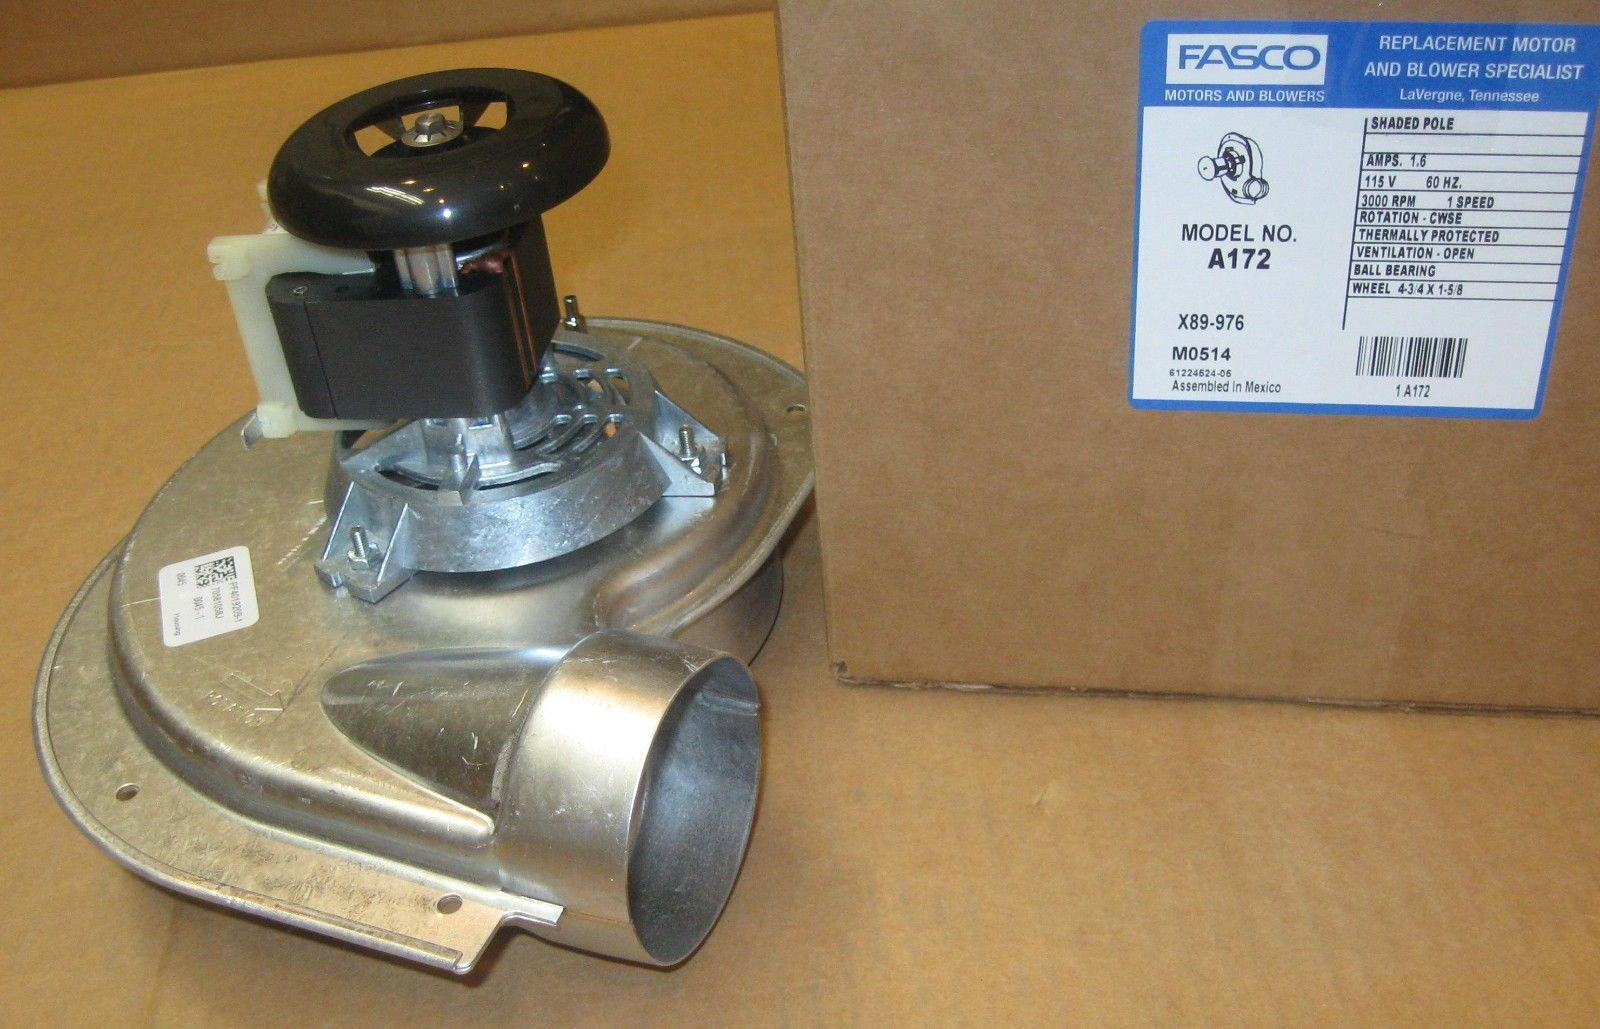 A172 Fasco Furnace Draft Inducer Motor For Heil 1010975p